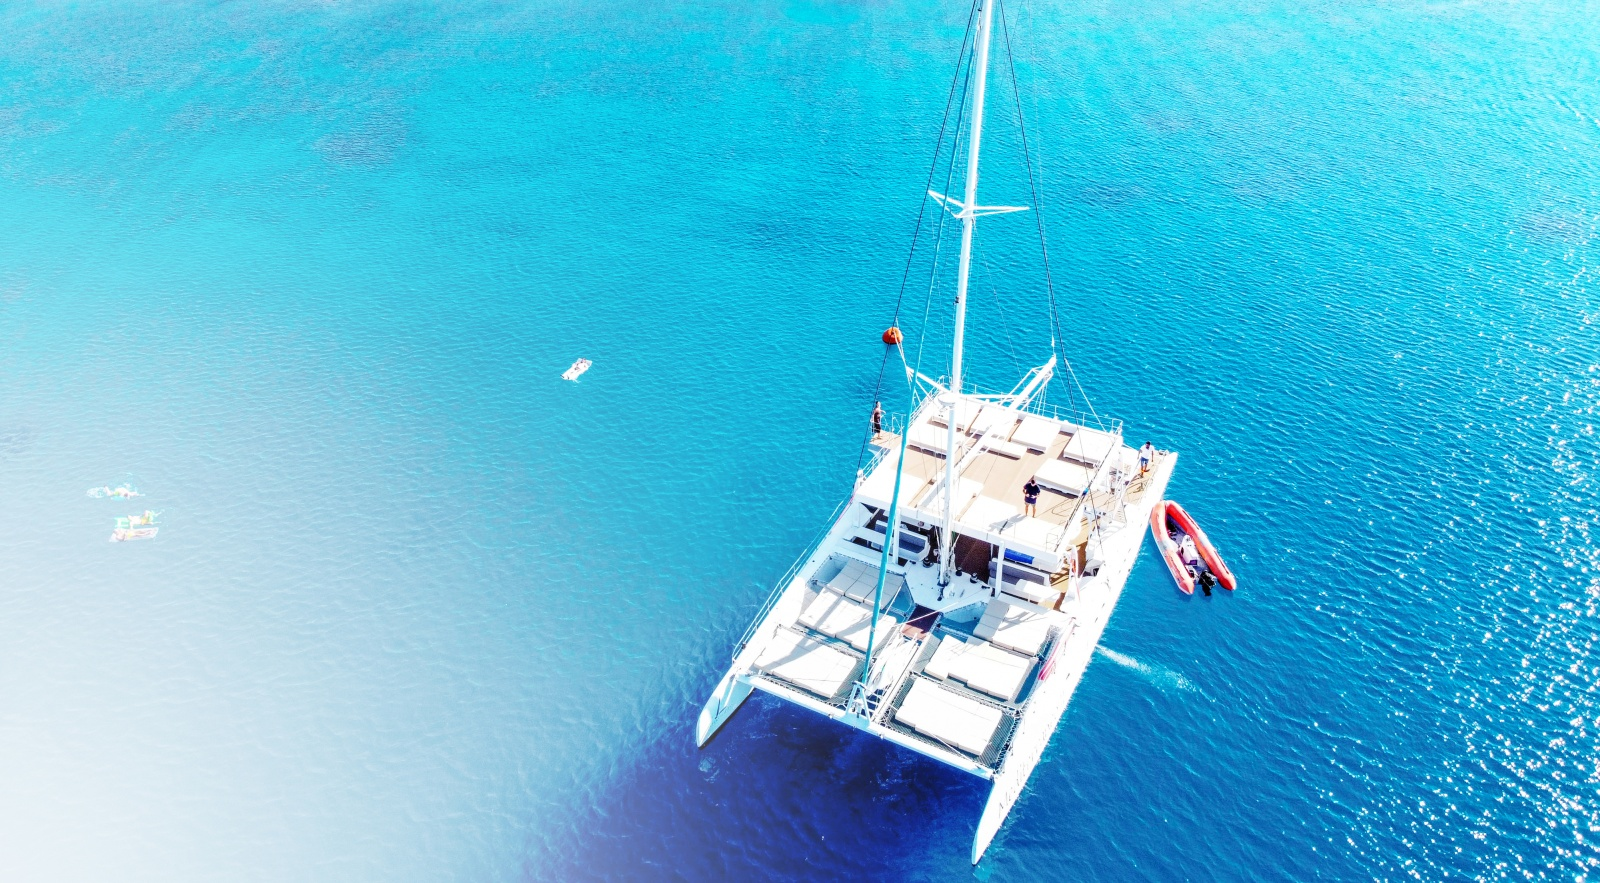 Looking for a memorable cruise?